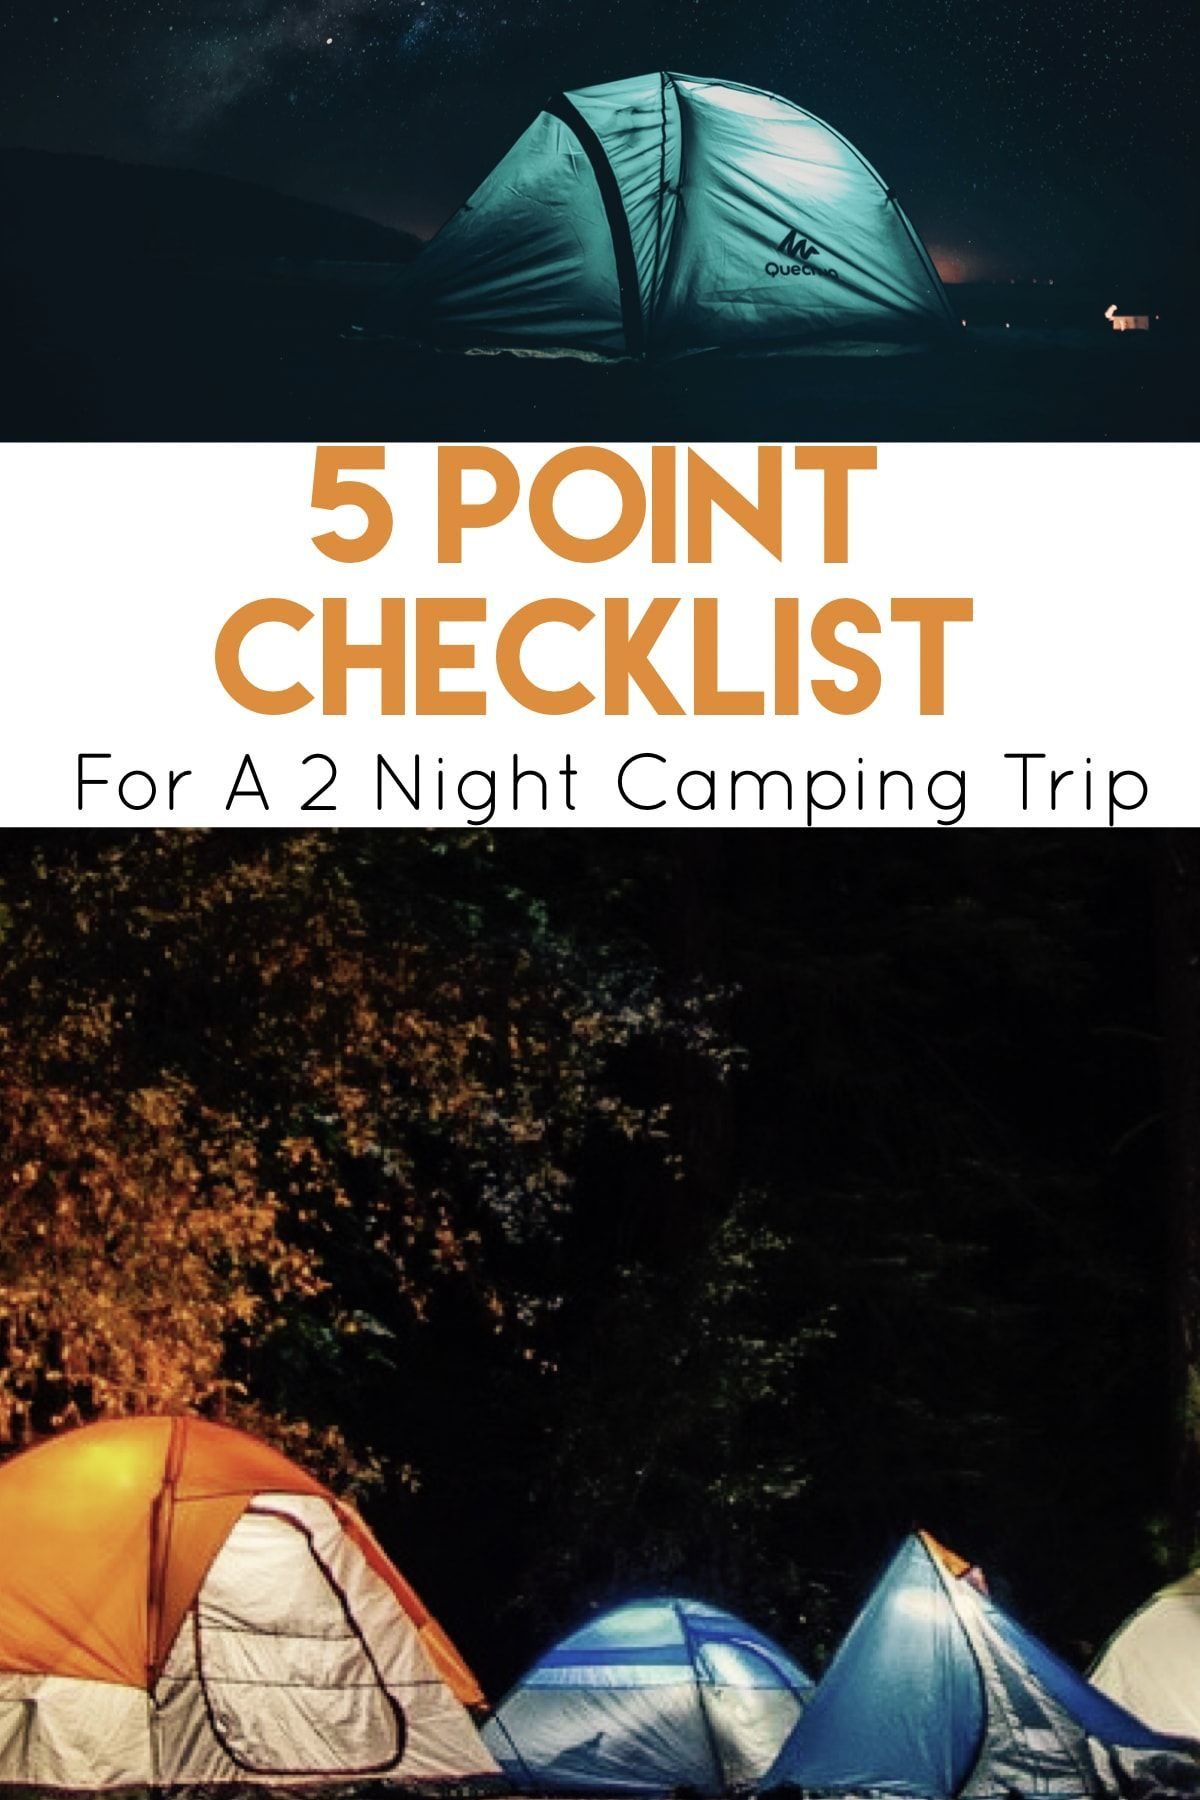 5 Point Checklist For A 2 Night Camping Trip Camping Supplies Camping Checklist Camping Trips